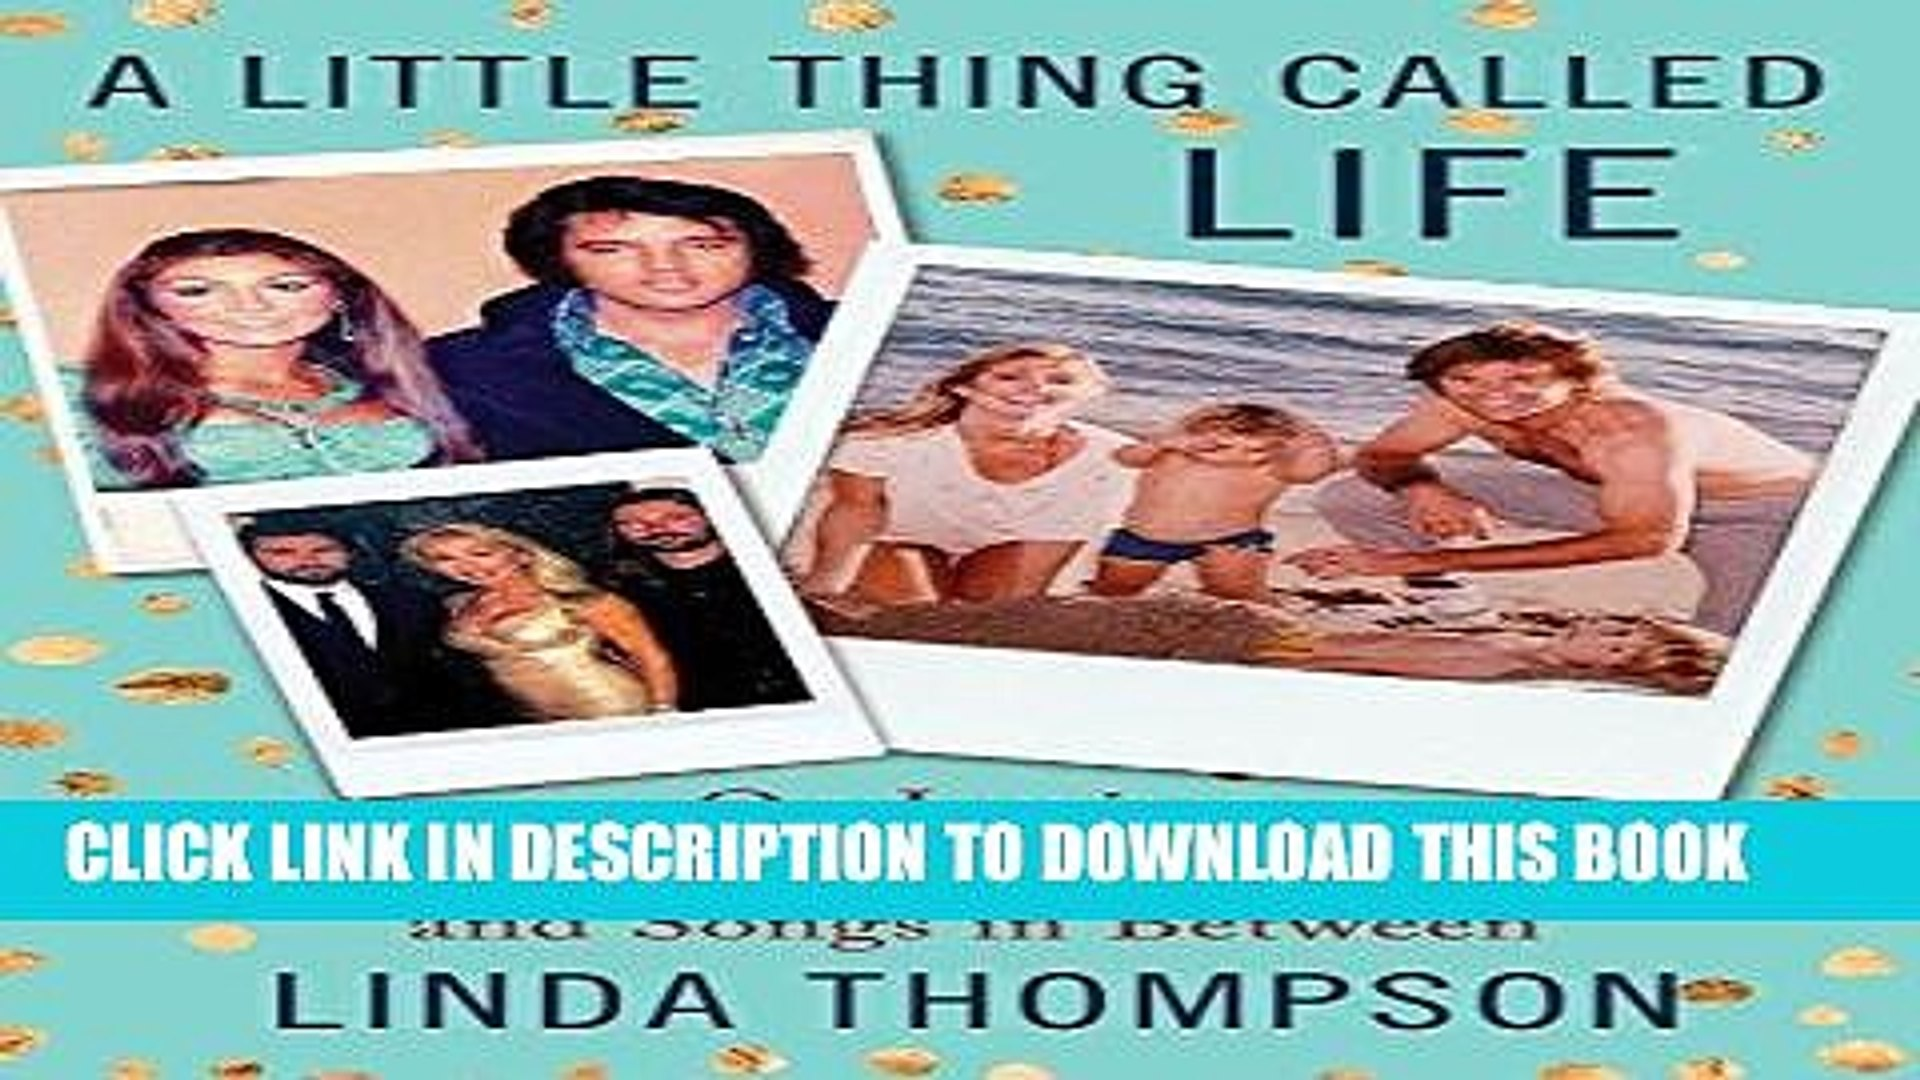 Best Seller A Little Thing Called Life: On Loving Elvis Presley, Bruce Jenner, and Songs in